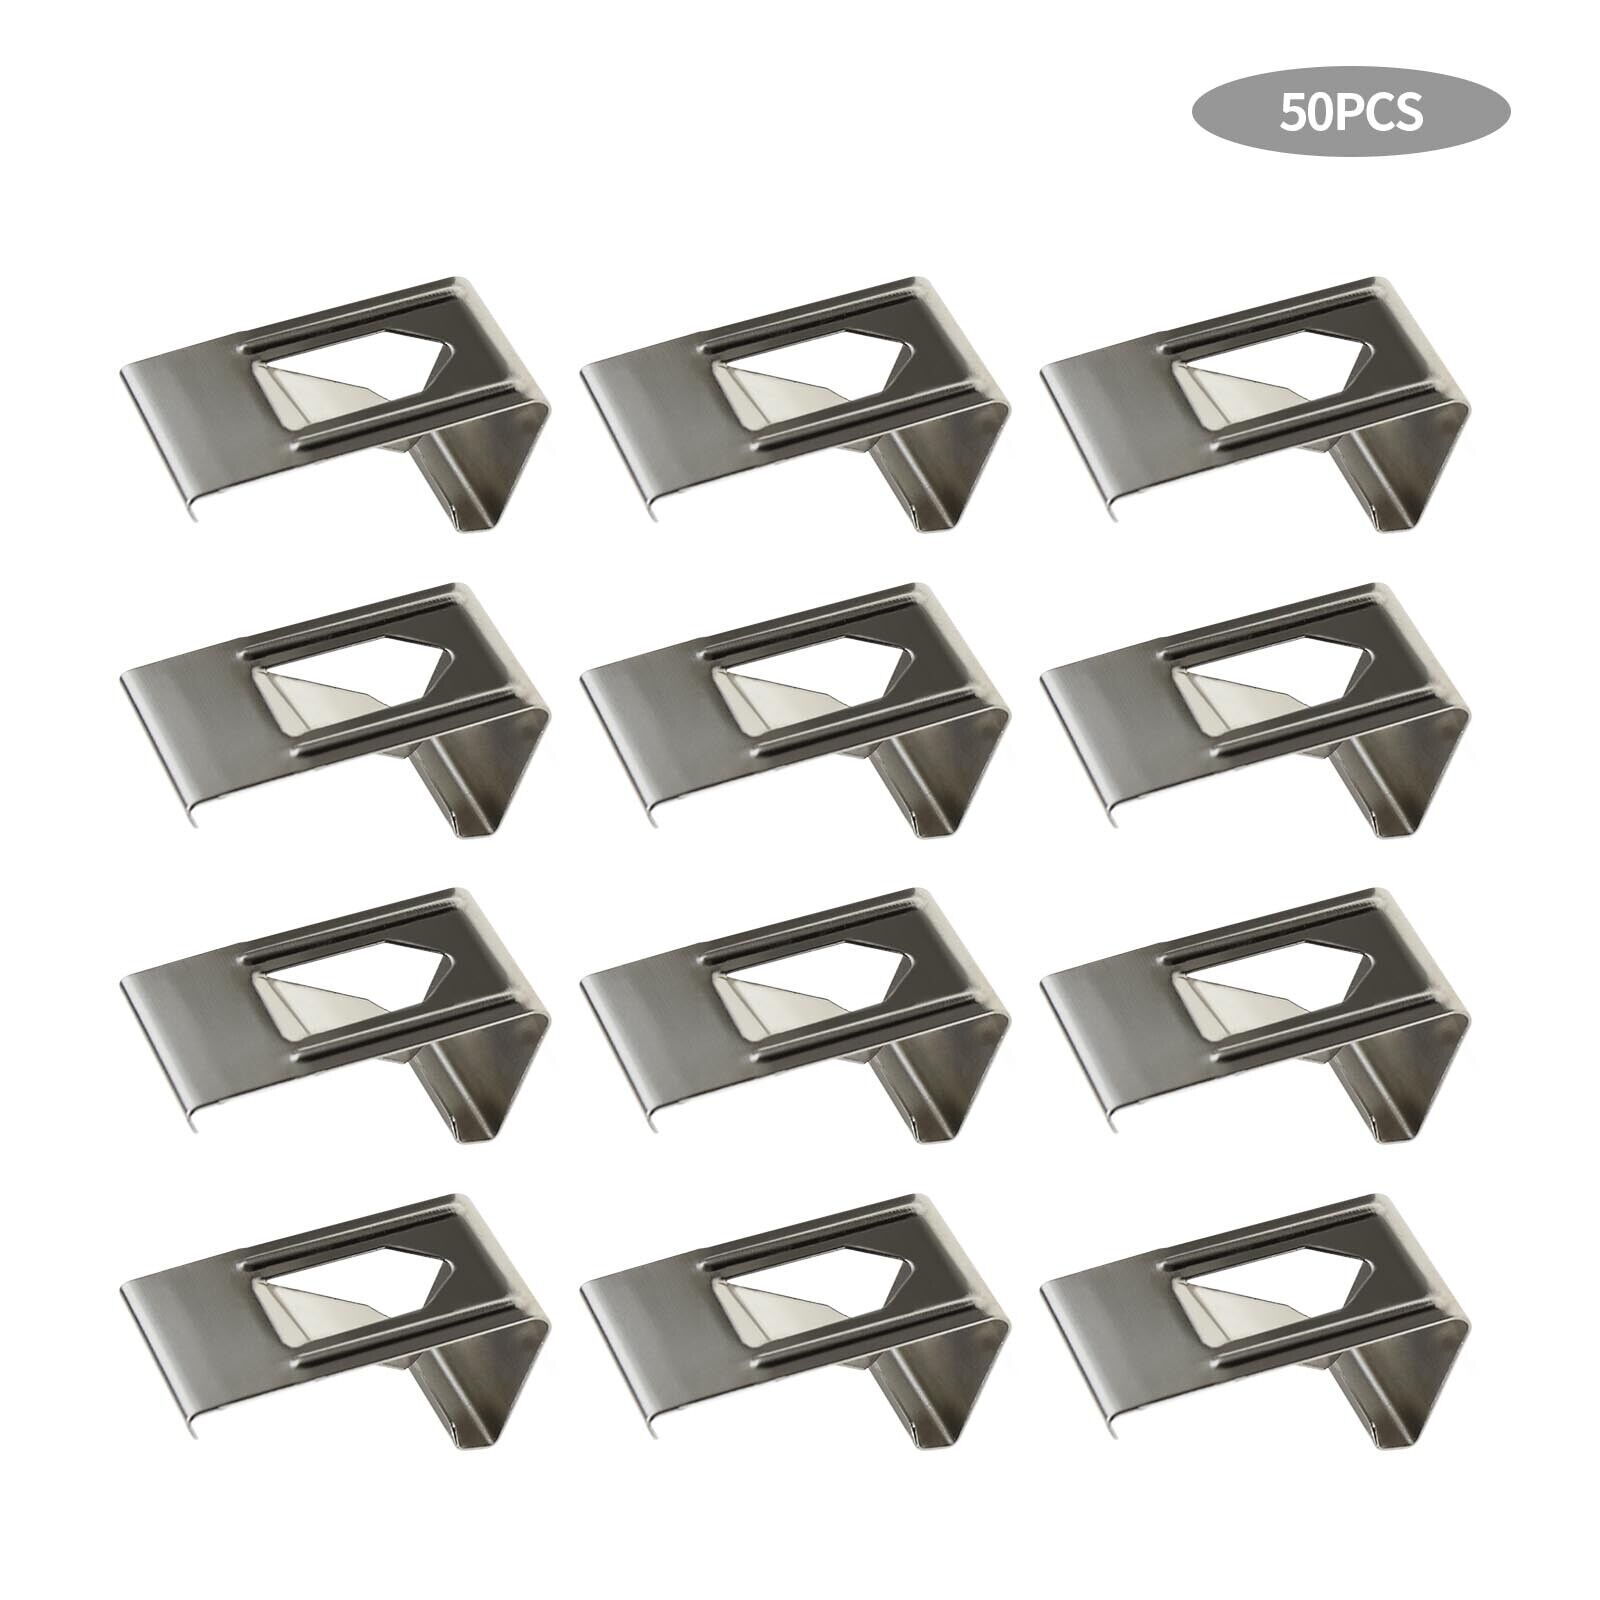 50Pcs Silver Spring Turn Clips Holders for 3D Printer Heated Bed Fixation